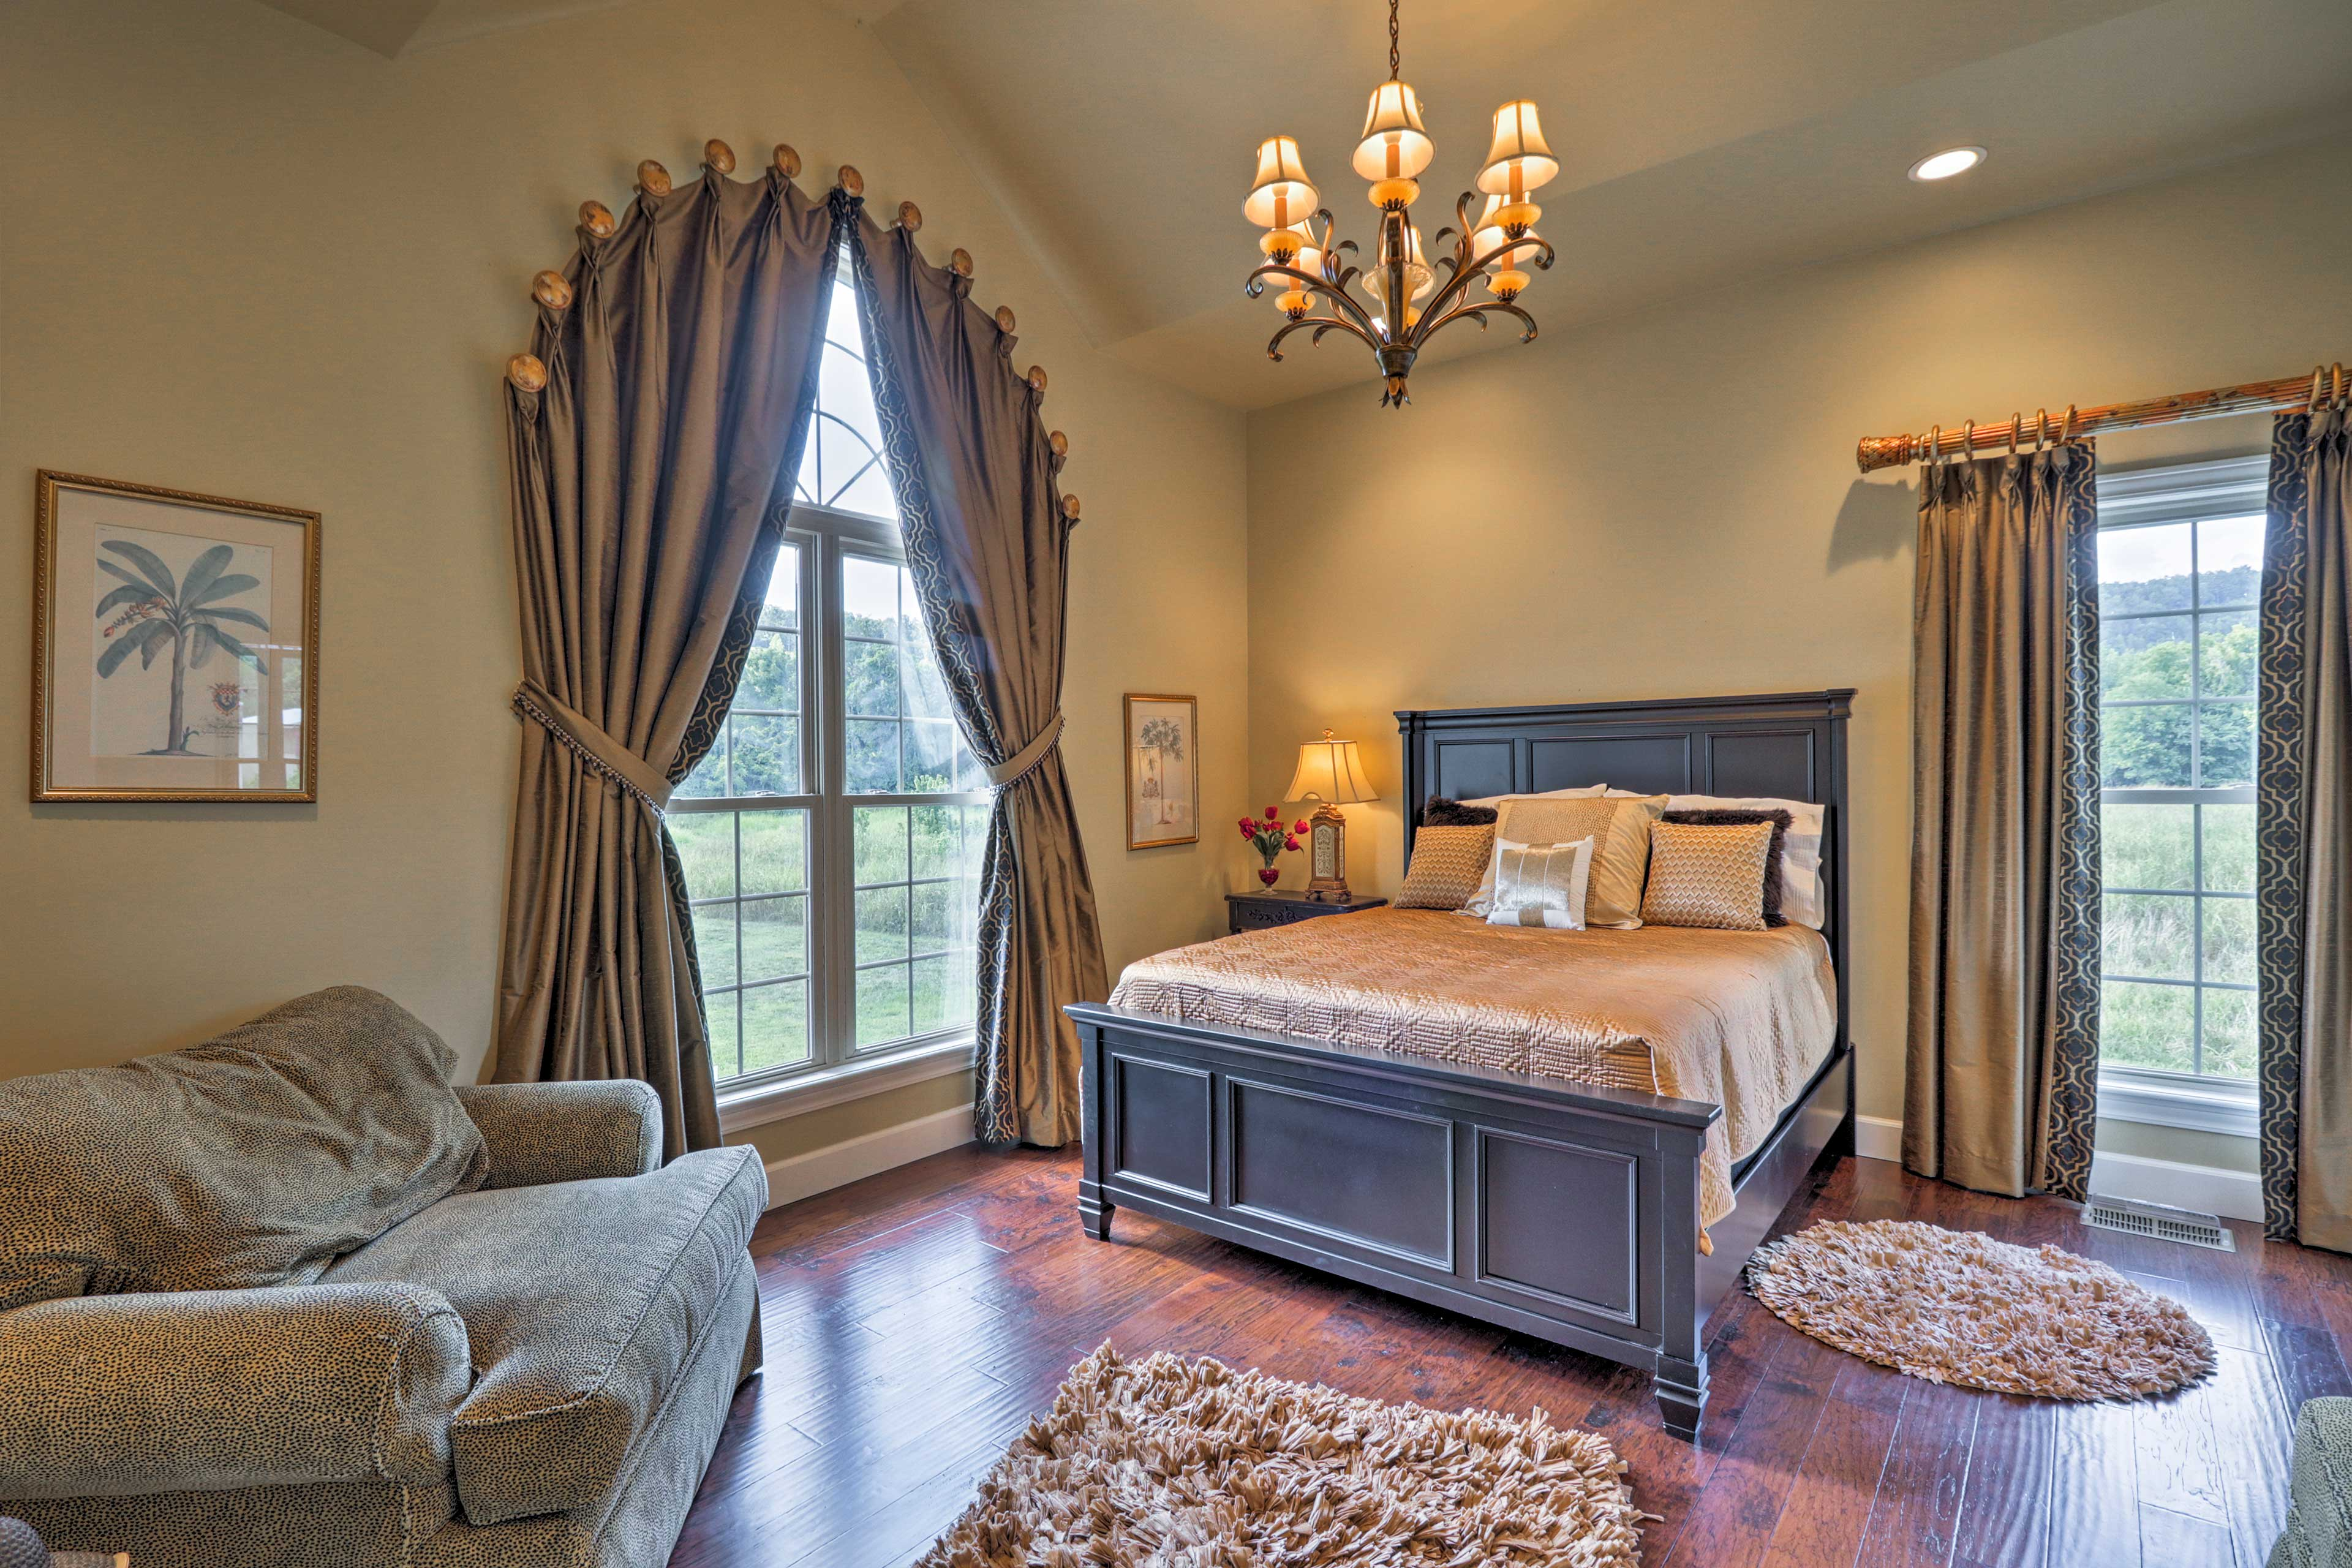 Climb under the covers of the queen bed in this room.